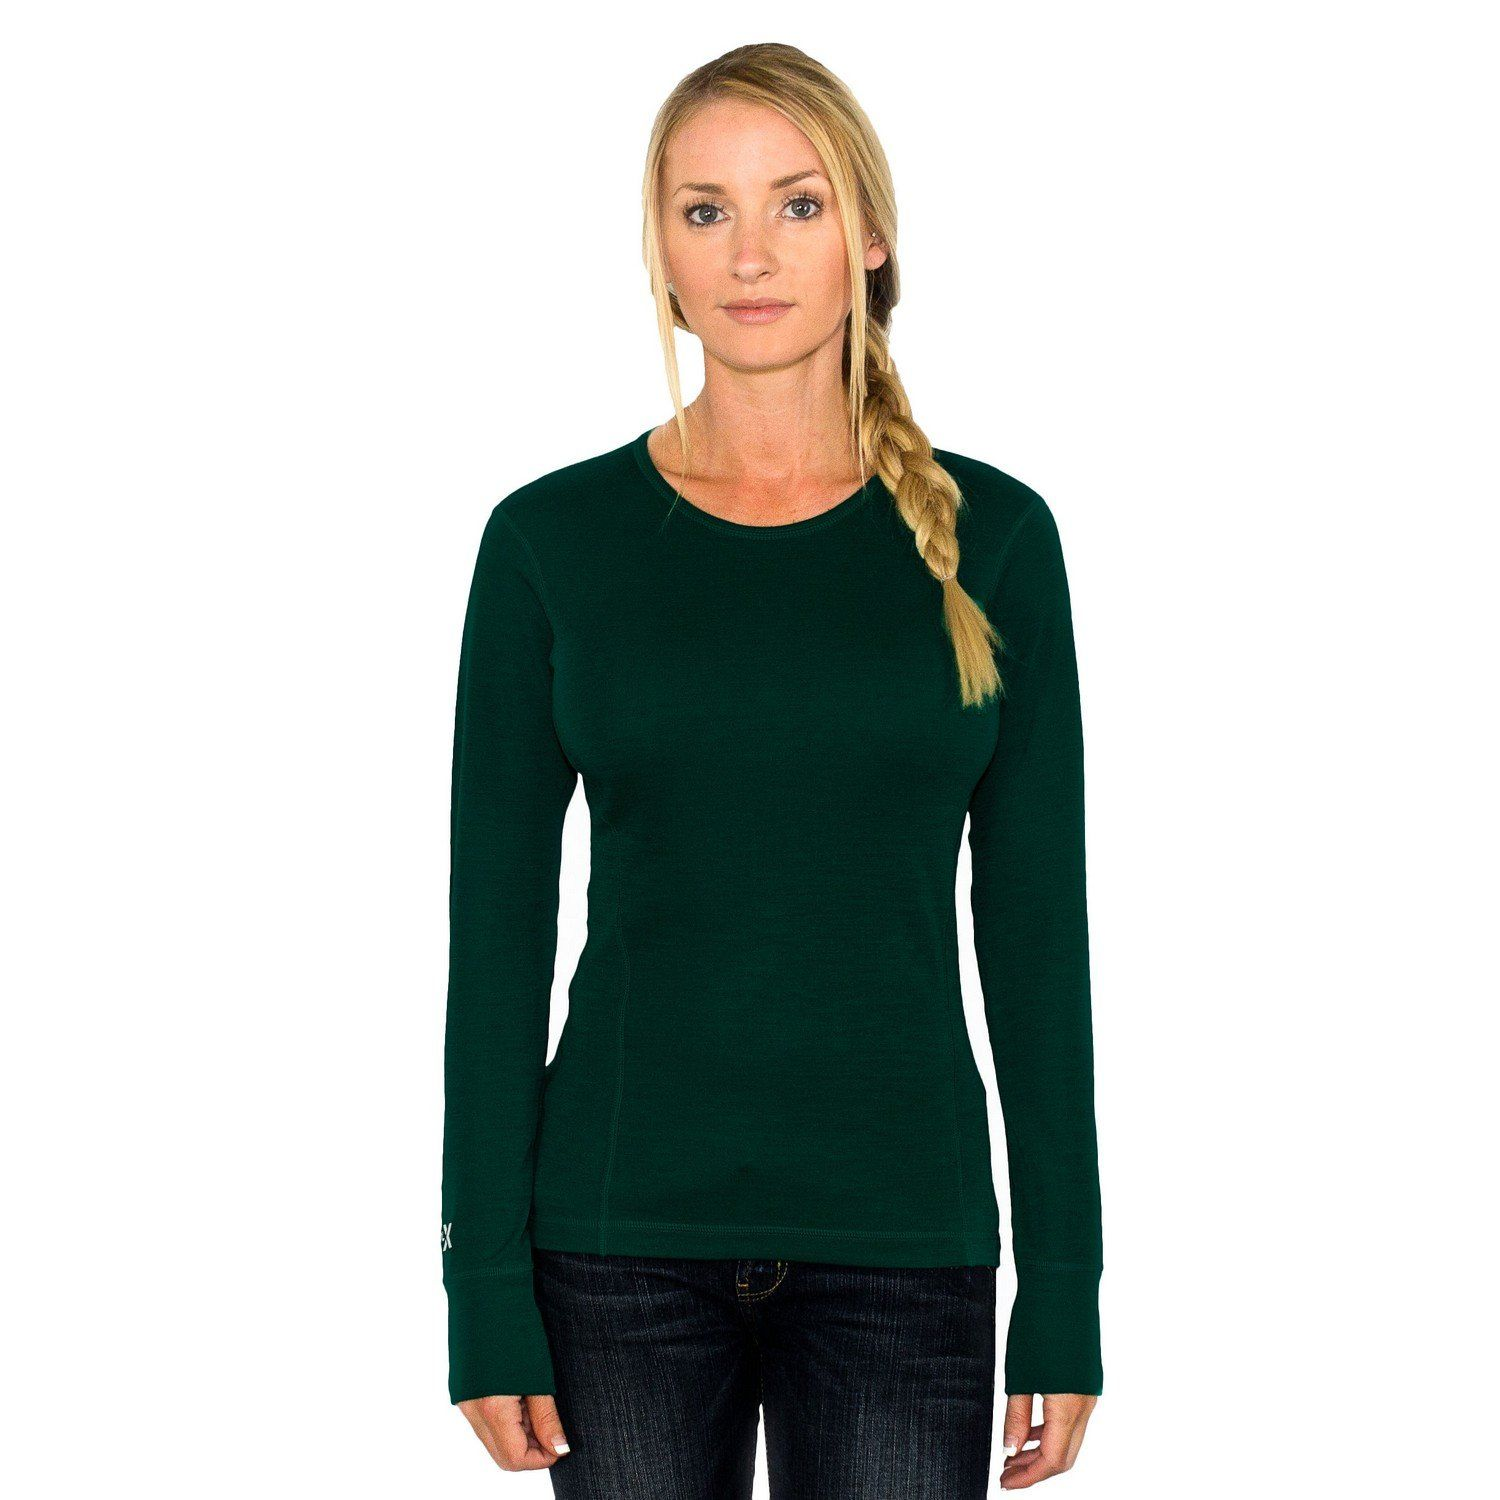 658b7a30df3a7 Womens merino wool base layer tops are perfect to wear while you are active  outside and